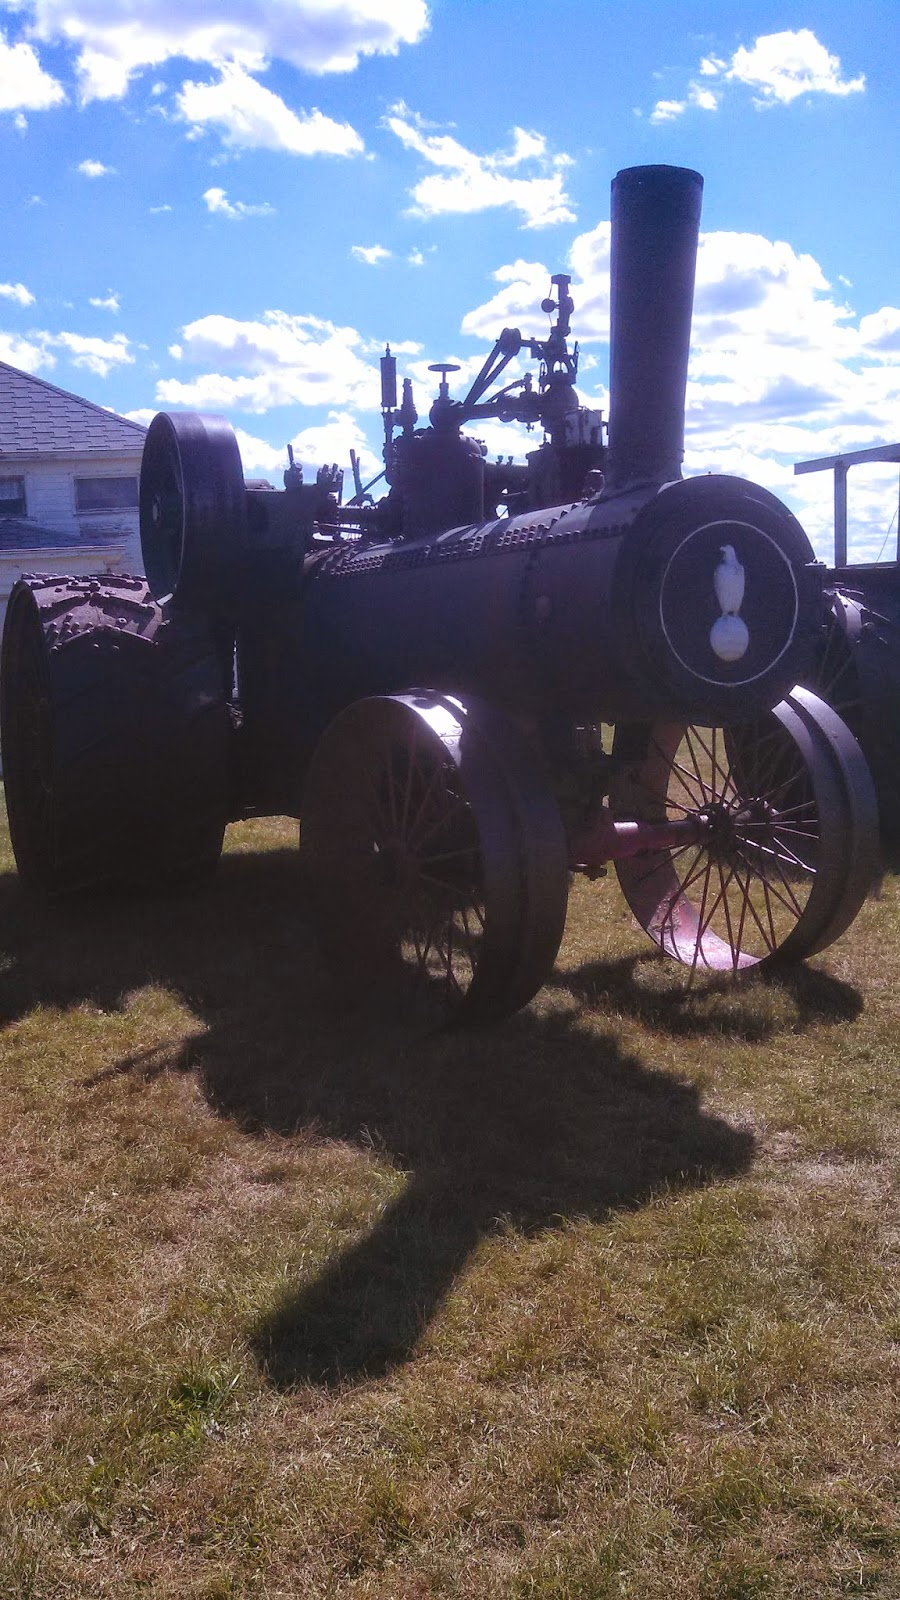 Another neat old tractor that looks halfways like a train engine